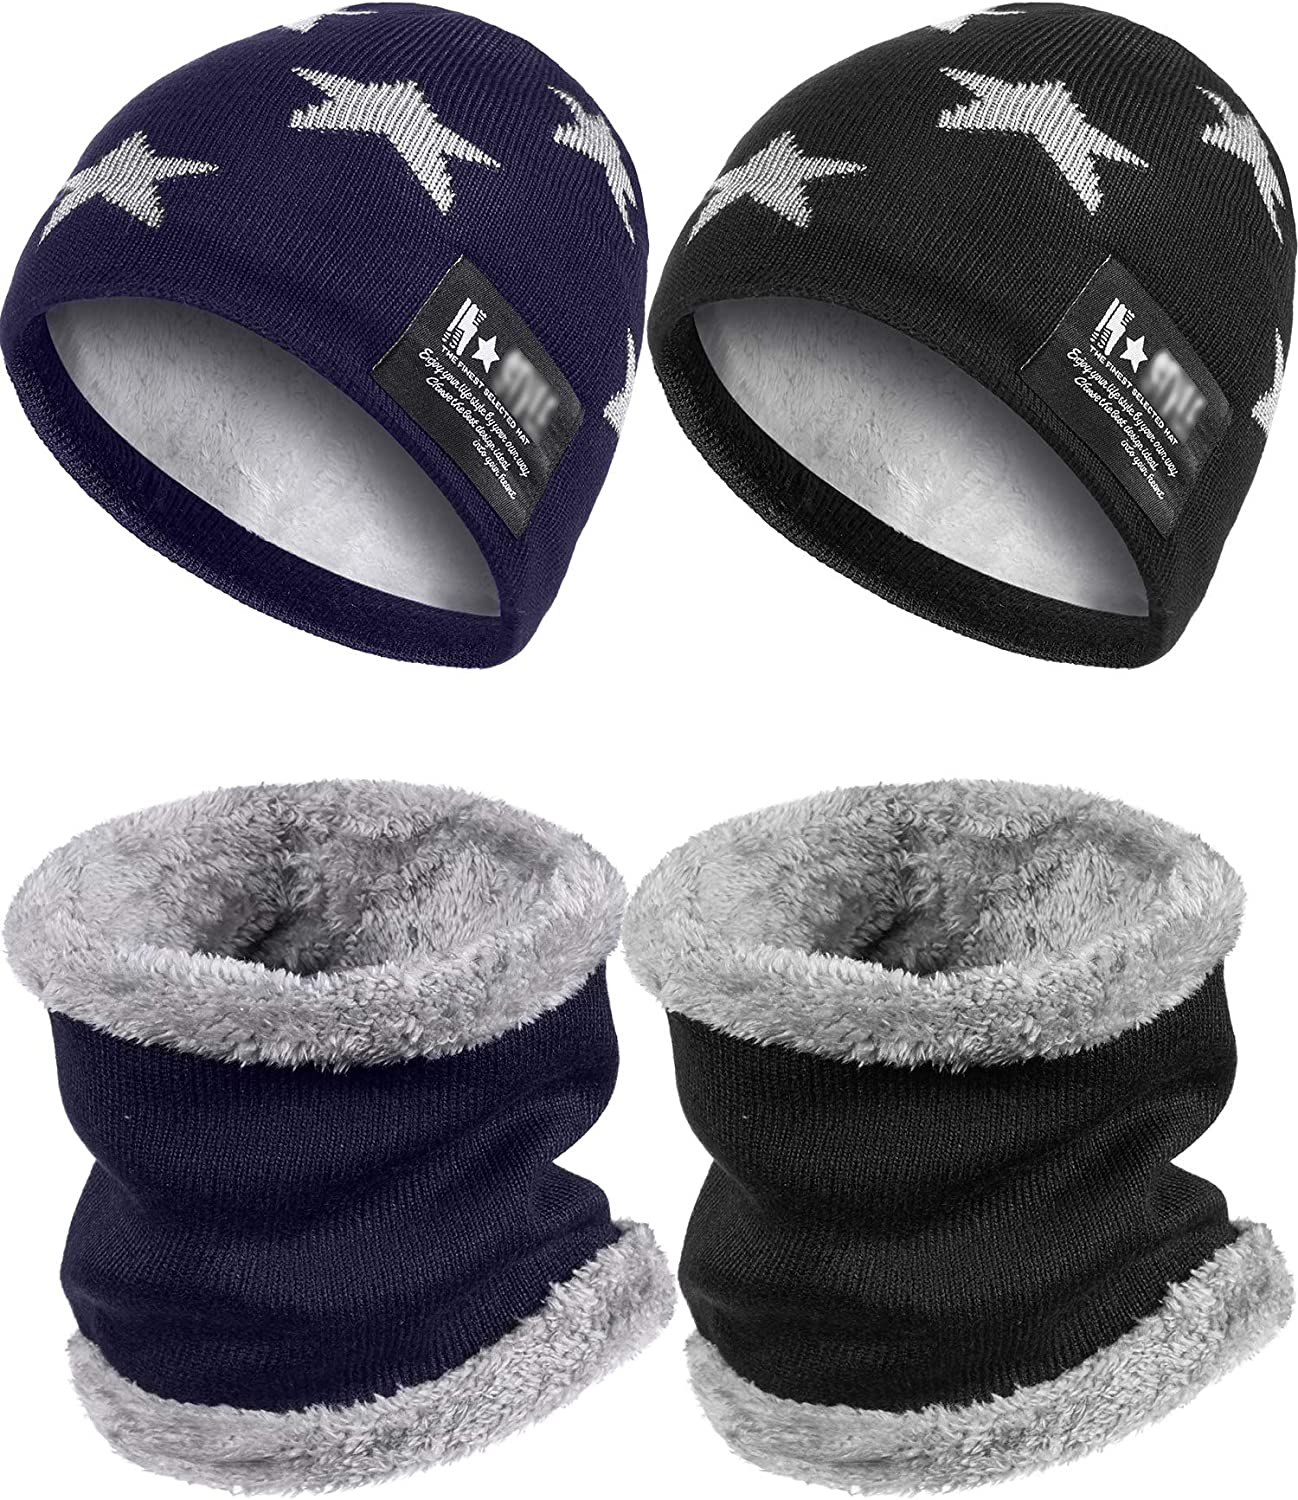 4 Pieces Kids Winter Hat Tube Scarf Set Warm Hat Neck Warmer for 5-14 Years Kids